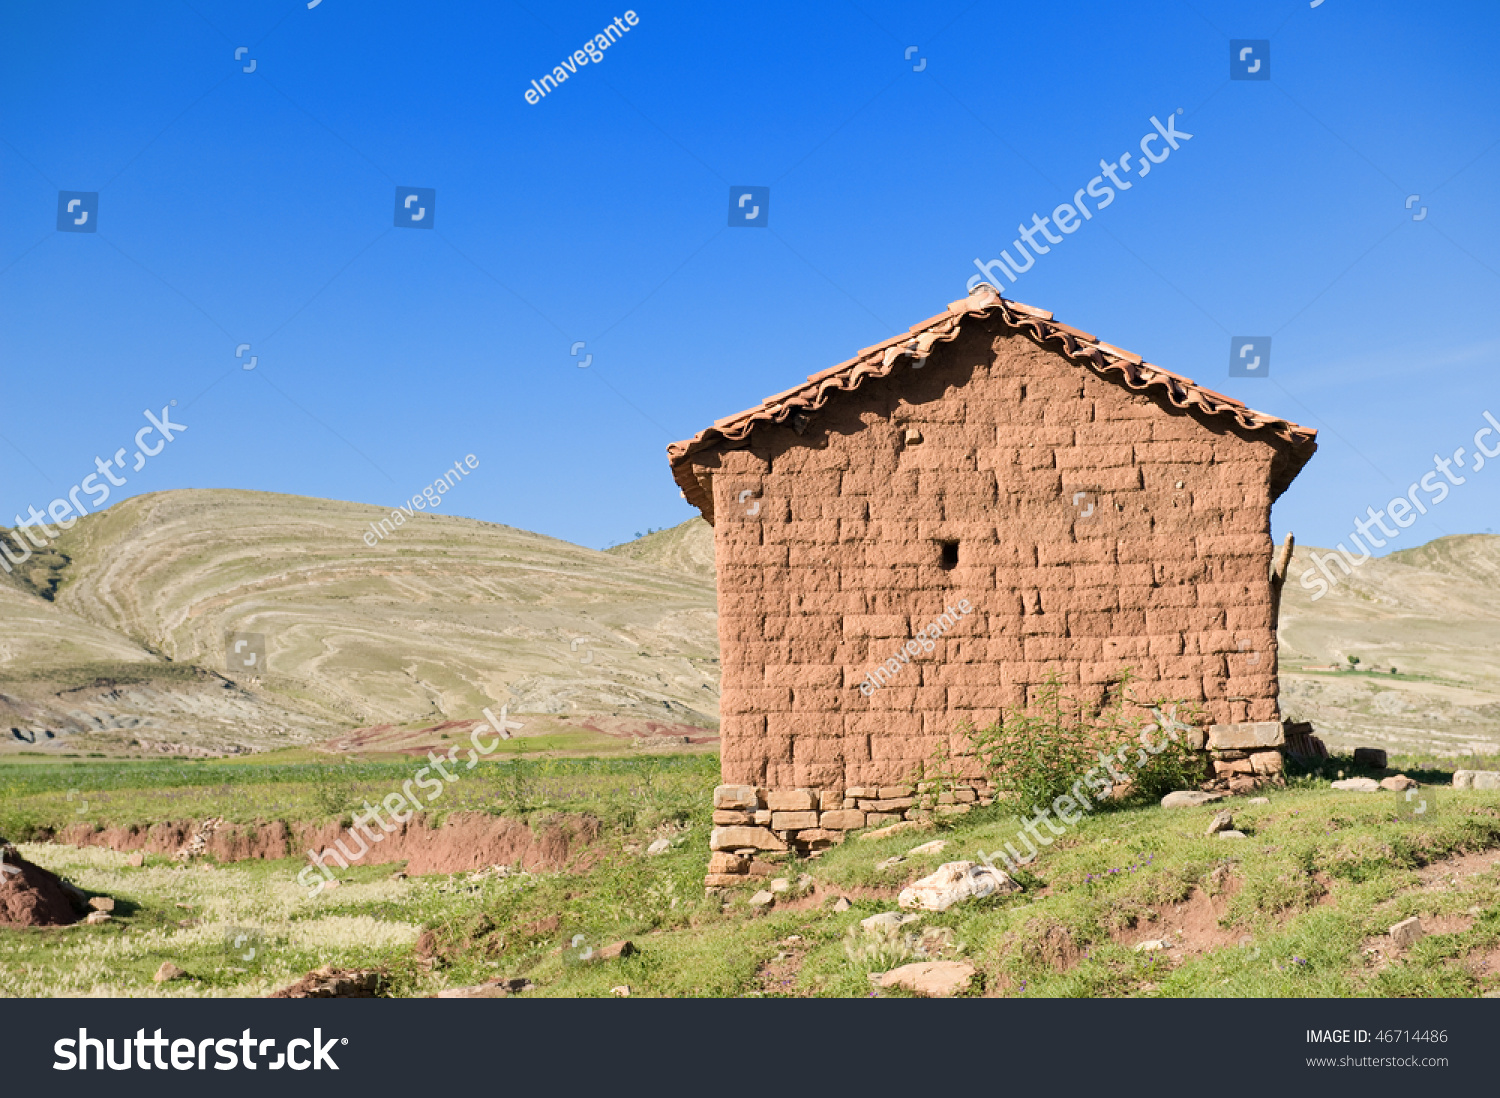 Pictures Of Old Adobe Houses House